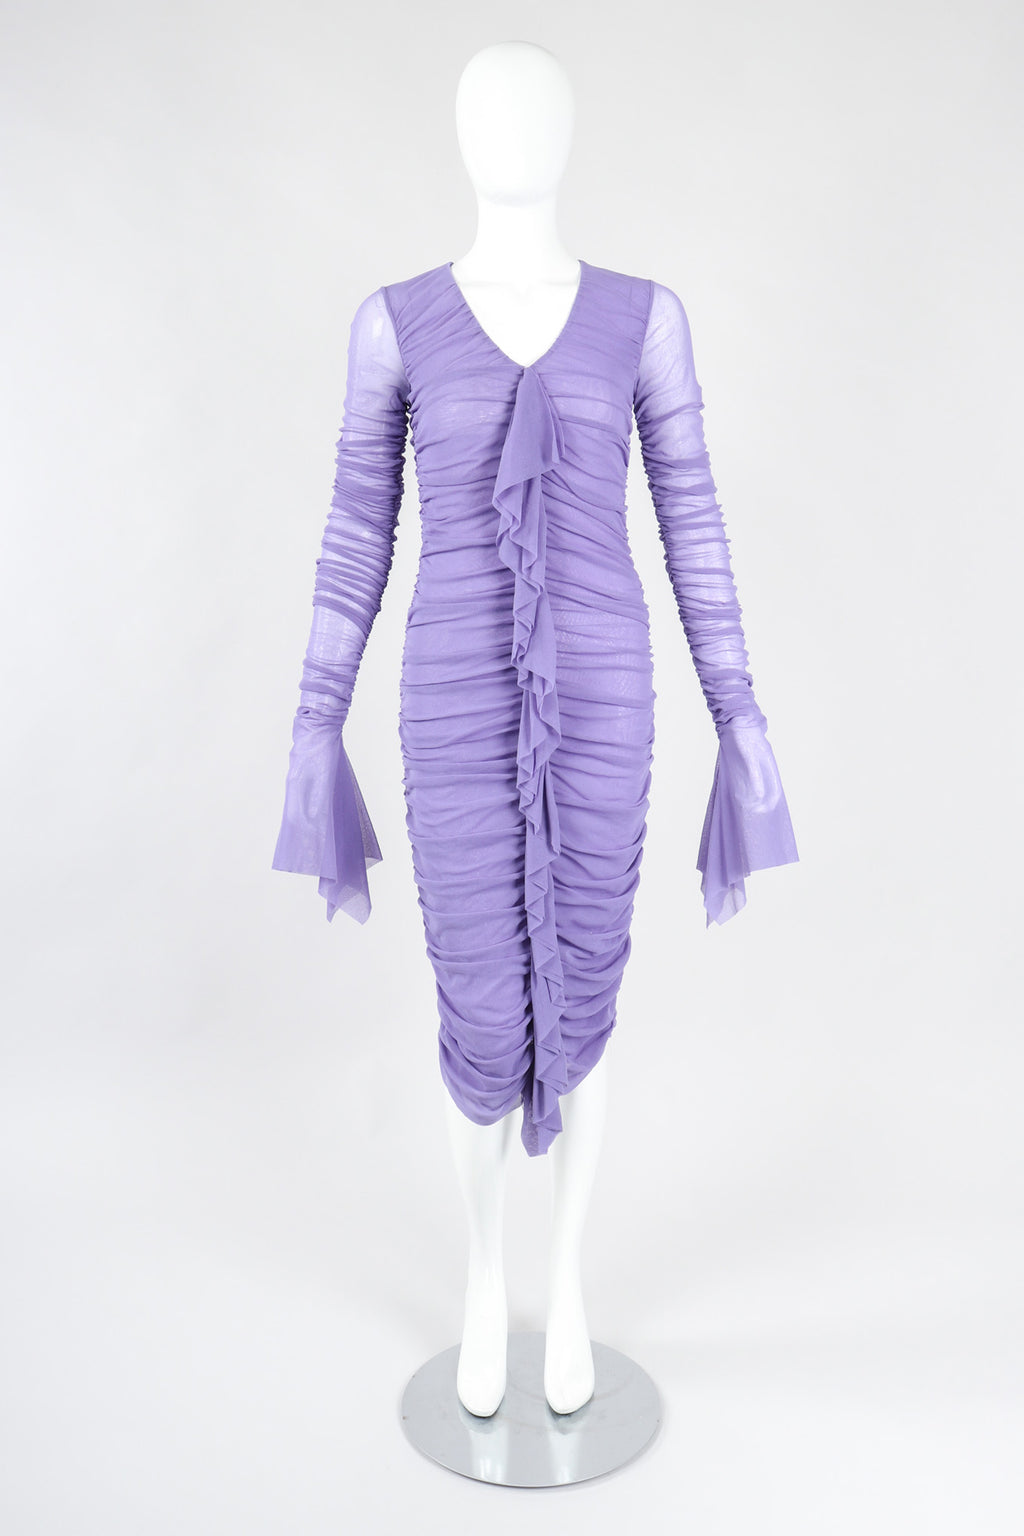 Recess Los Angeles Vintage Jean Paul Gaultier Soleil Ruched Mesh Ruffle Cuff Dress